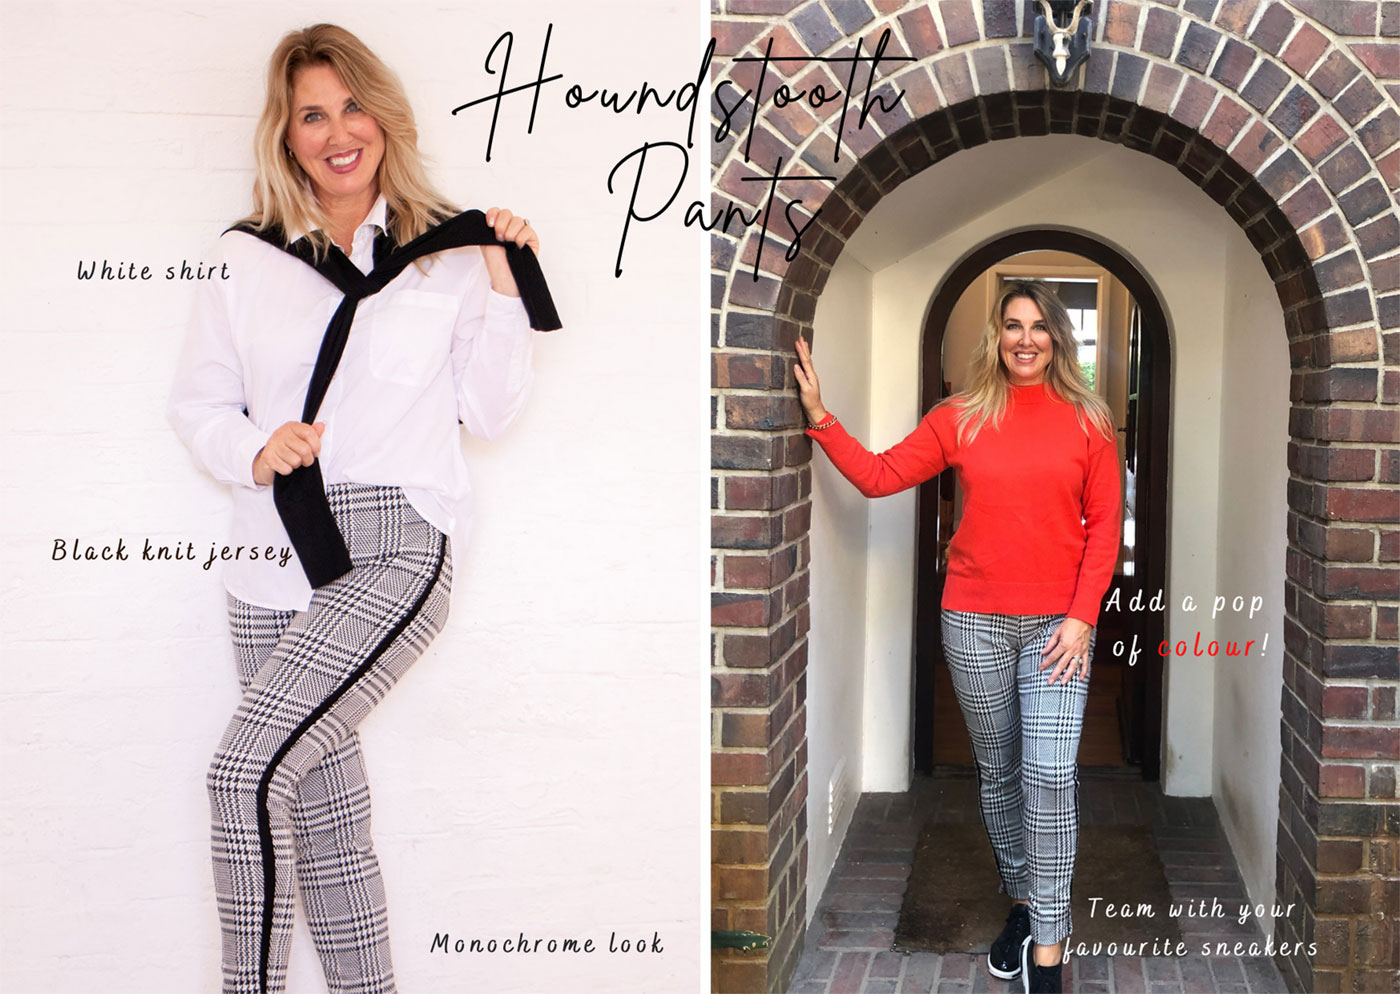 Marvellous and Versatile in Monochrome from Off The Rails Fashionista